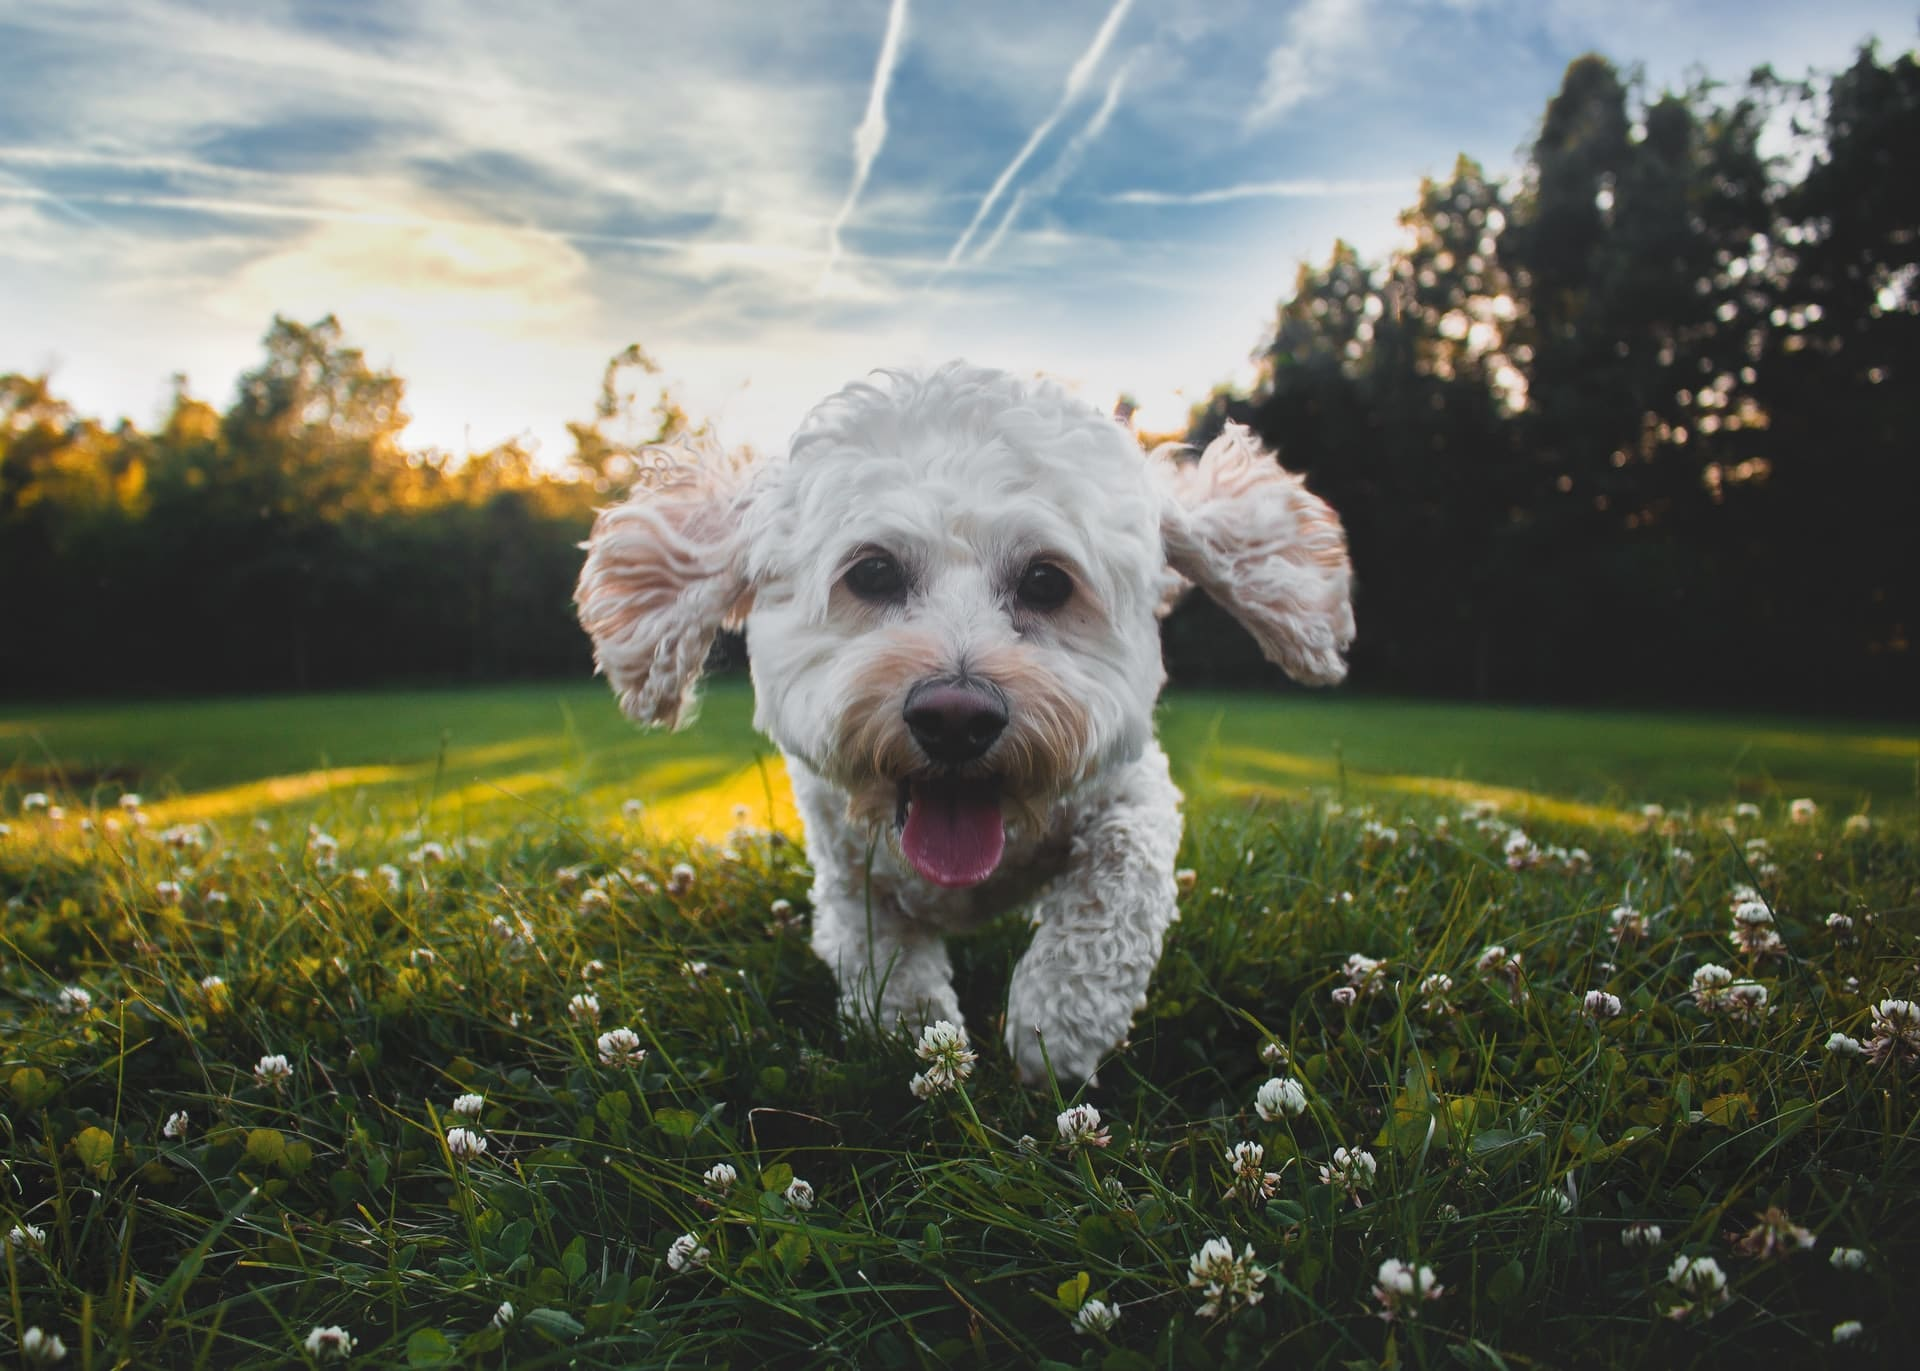 White cockapoo puppy on grass outside